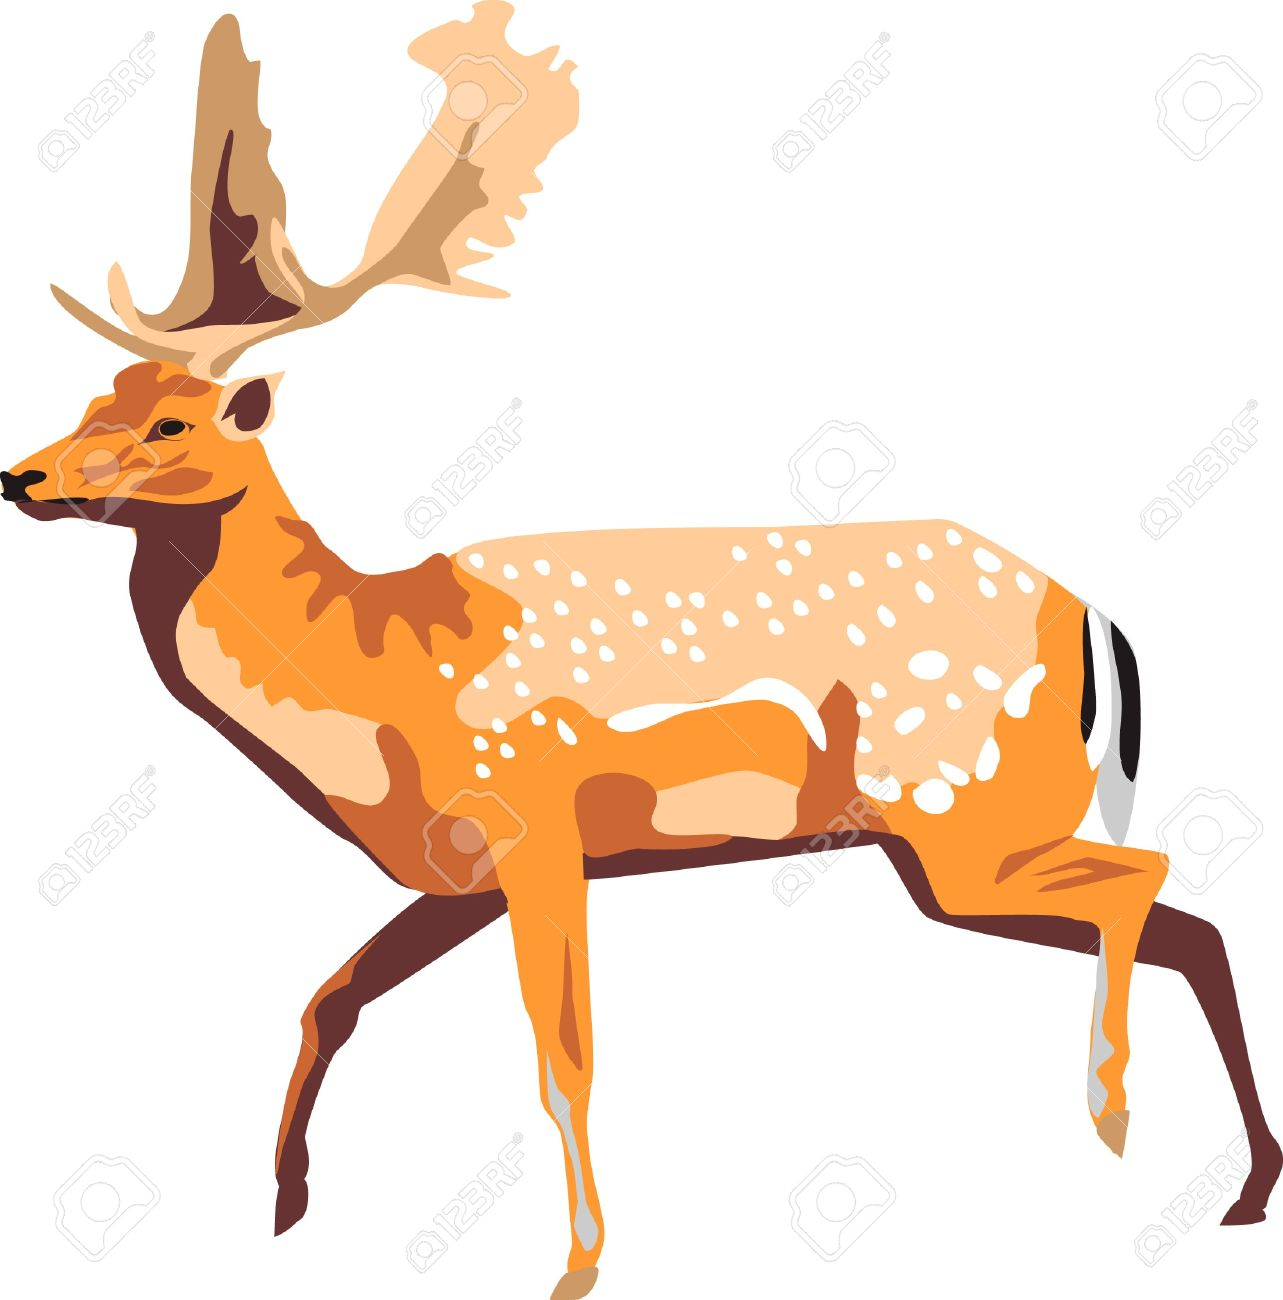 Running Fallow Deer Royalty Free Cliparts, Vectors, And Stock.